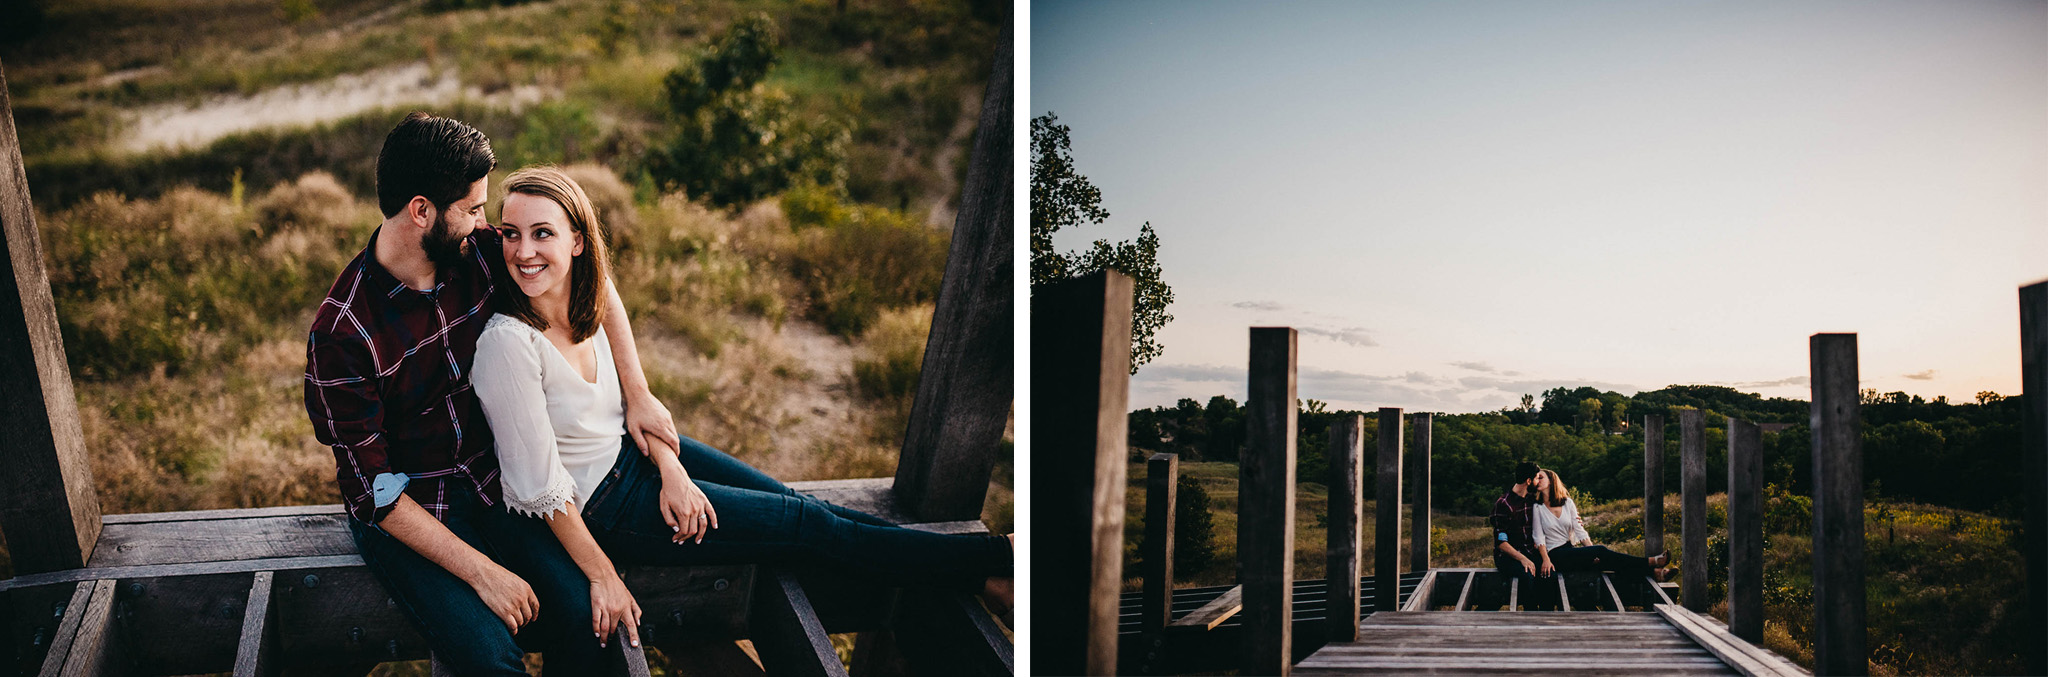 engagement photo of a couple sitting on an unfinished board walk at the top of a sand dune